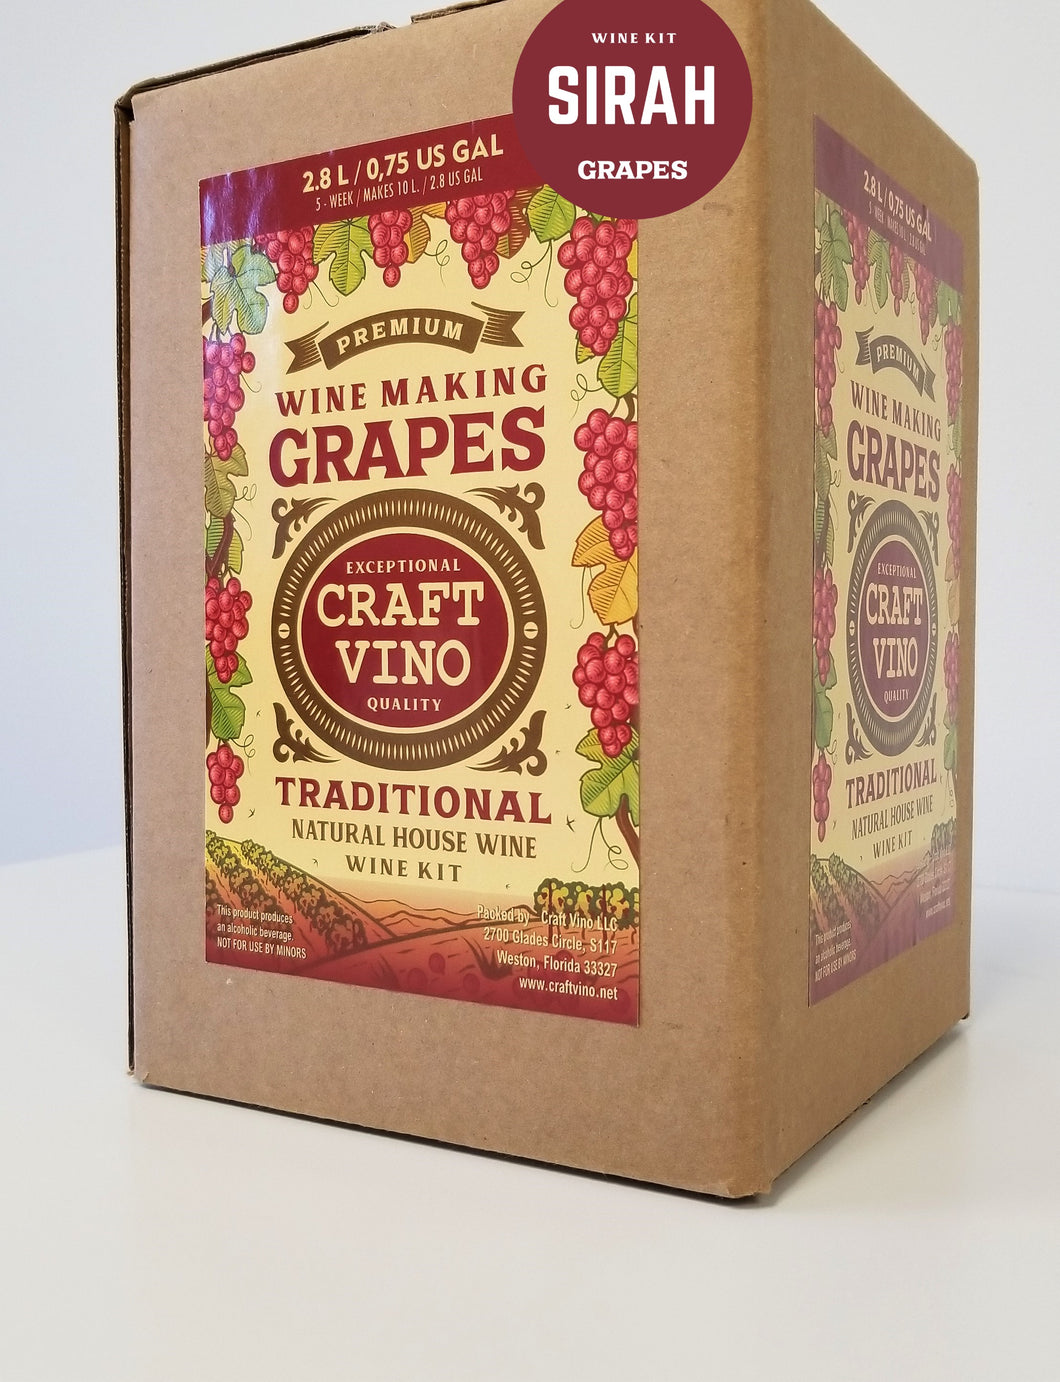 SIRAH GRAPES Premium Wine Kit – Sirah – Makes wine in 4 -5 weeks - CraftVino